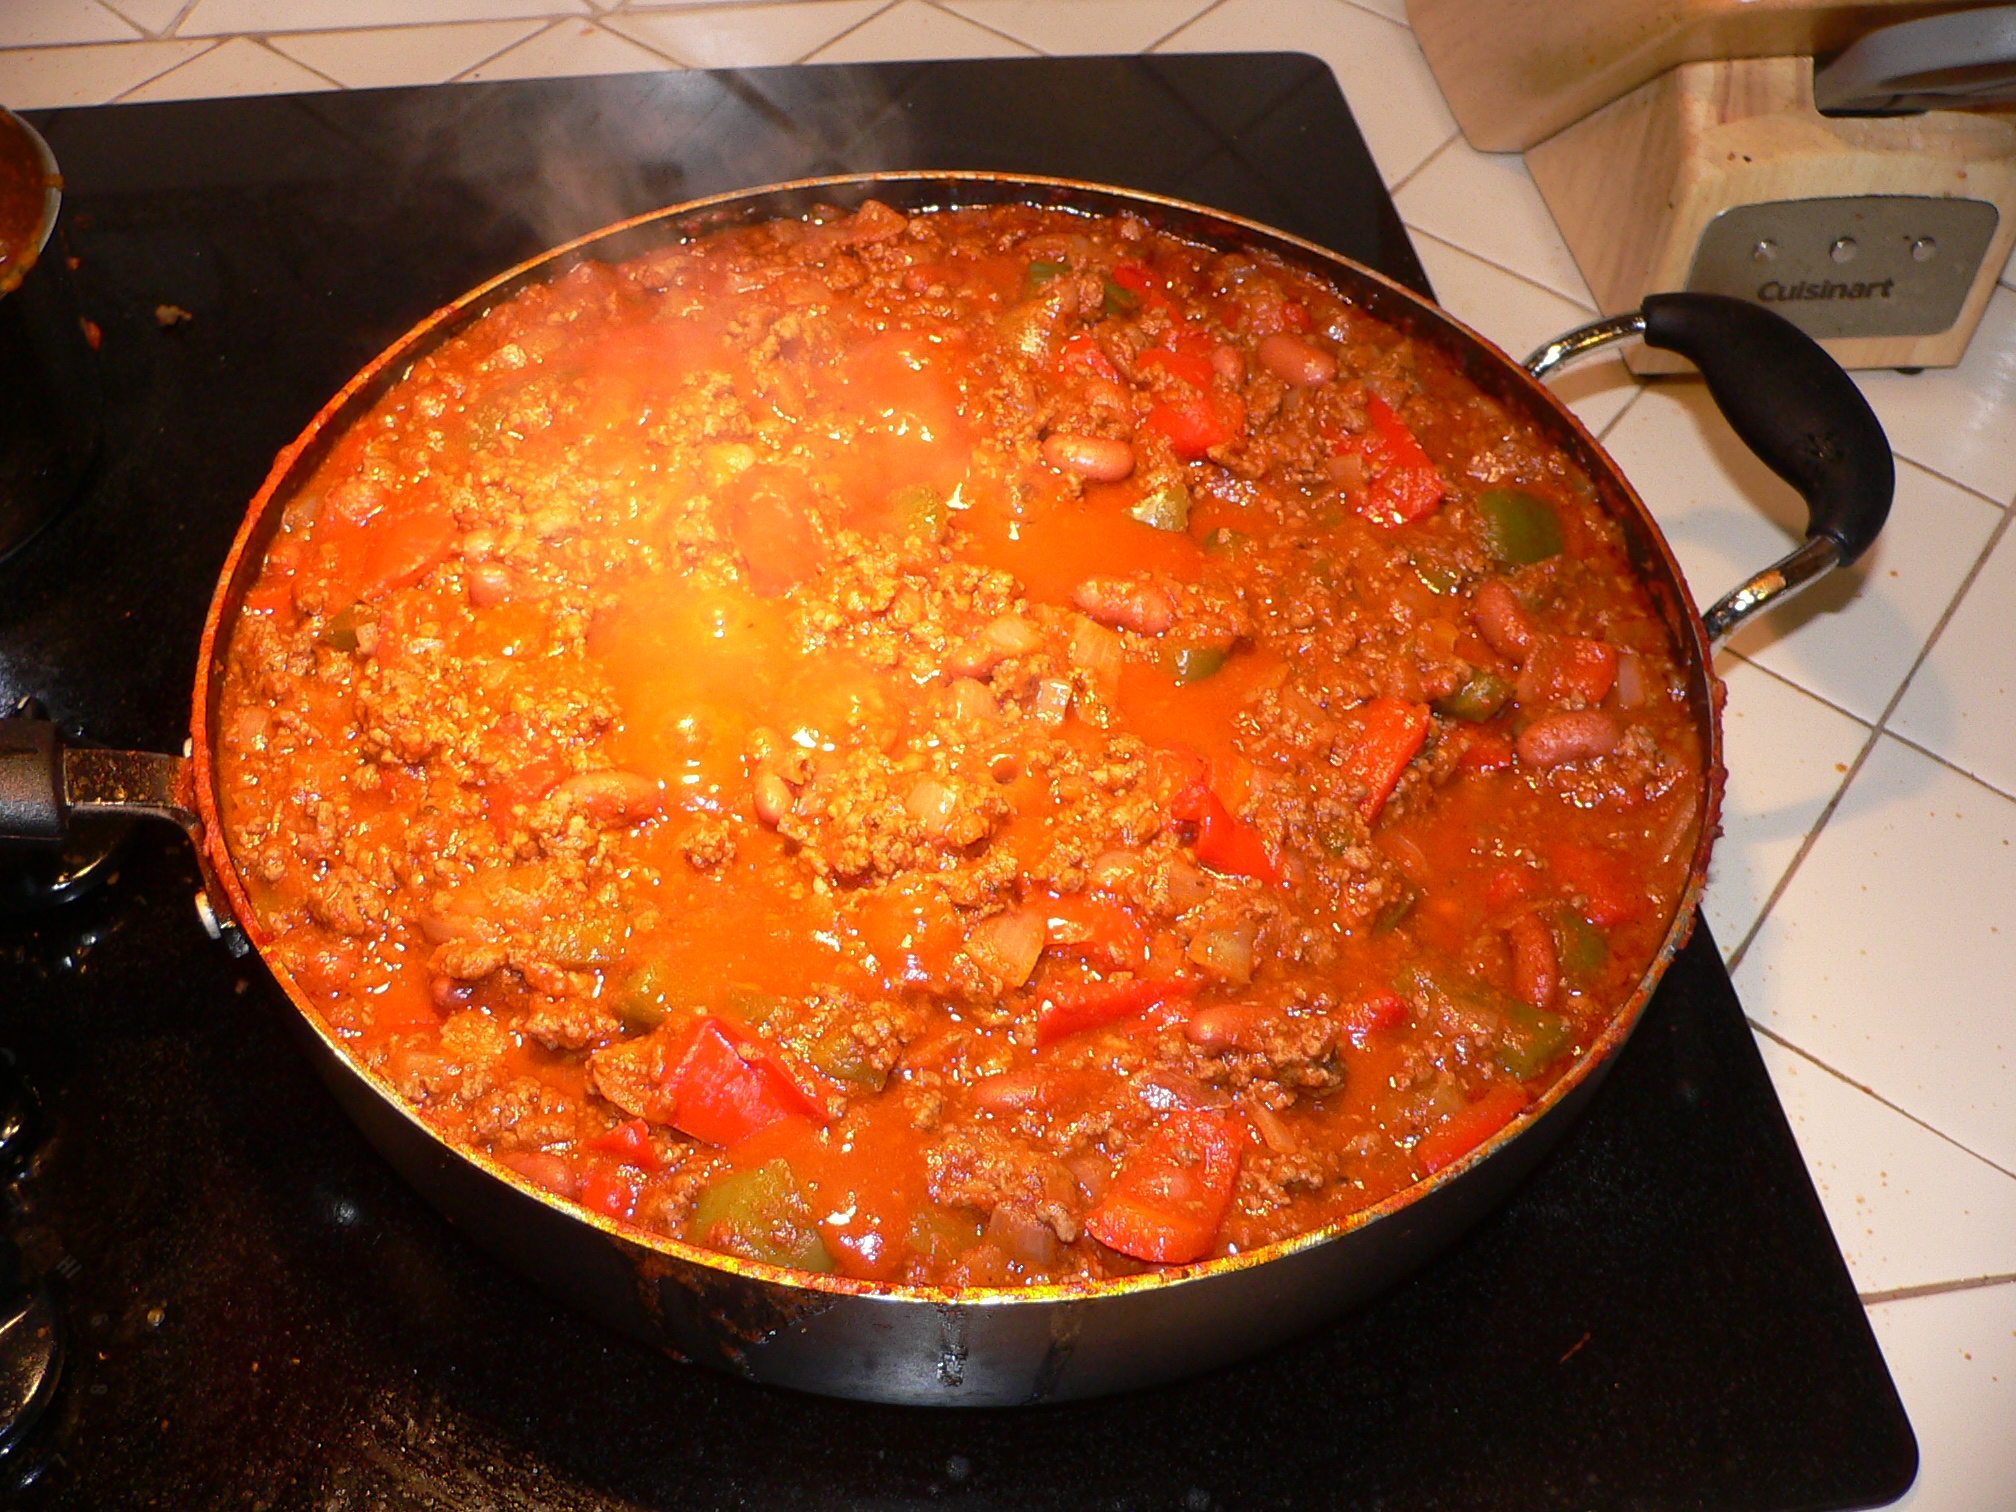 File:Chili con carne 6.jpg - Wikimedia Commons